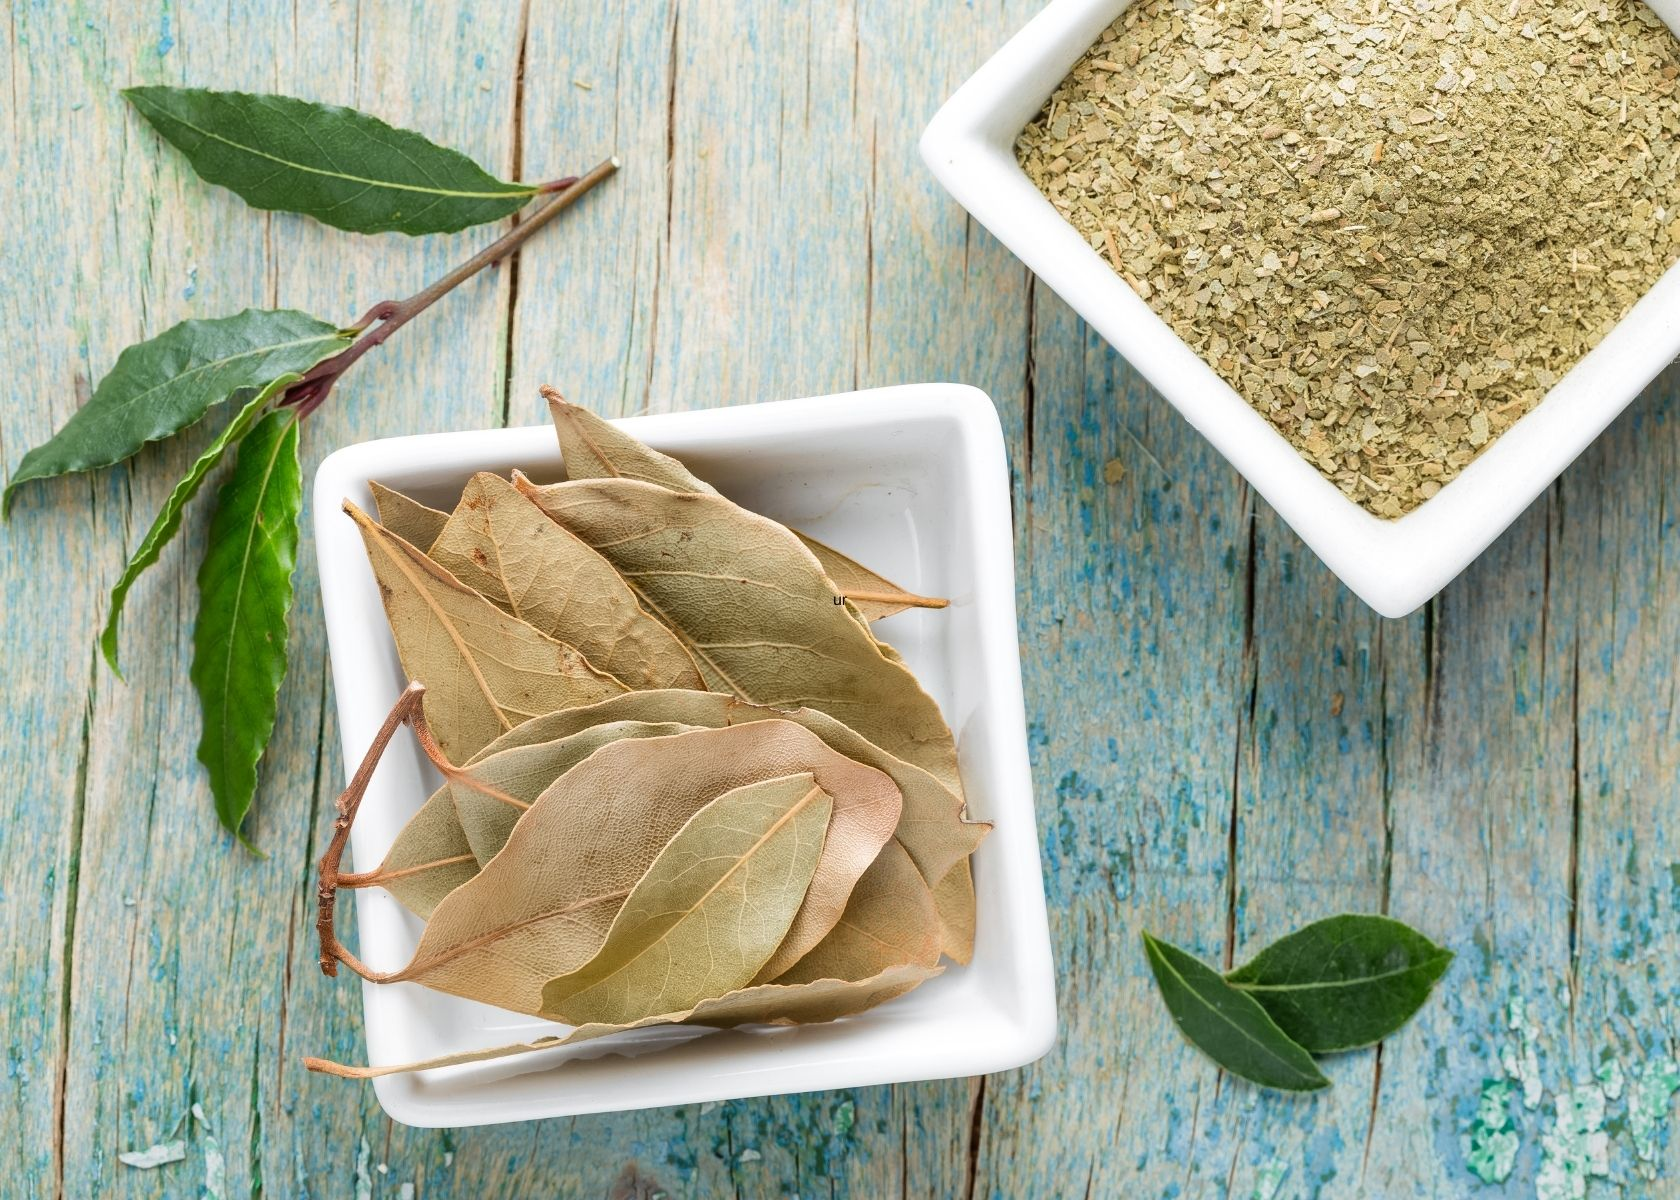 Fresh, dried and crushed bay leaf in white dishes on blue wooden table.